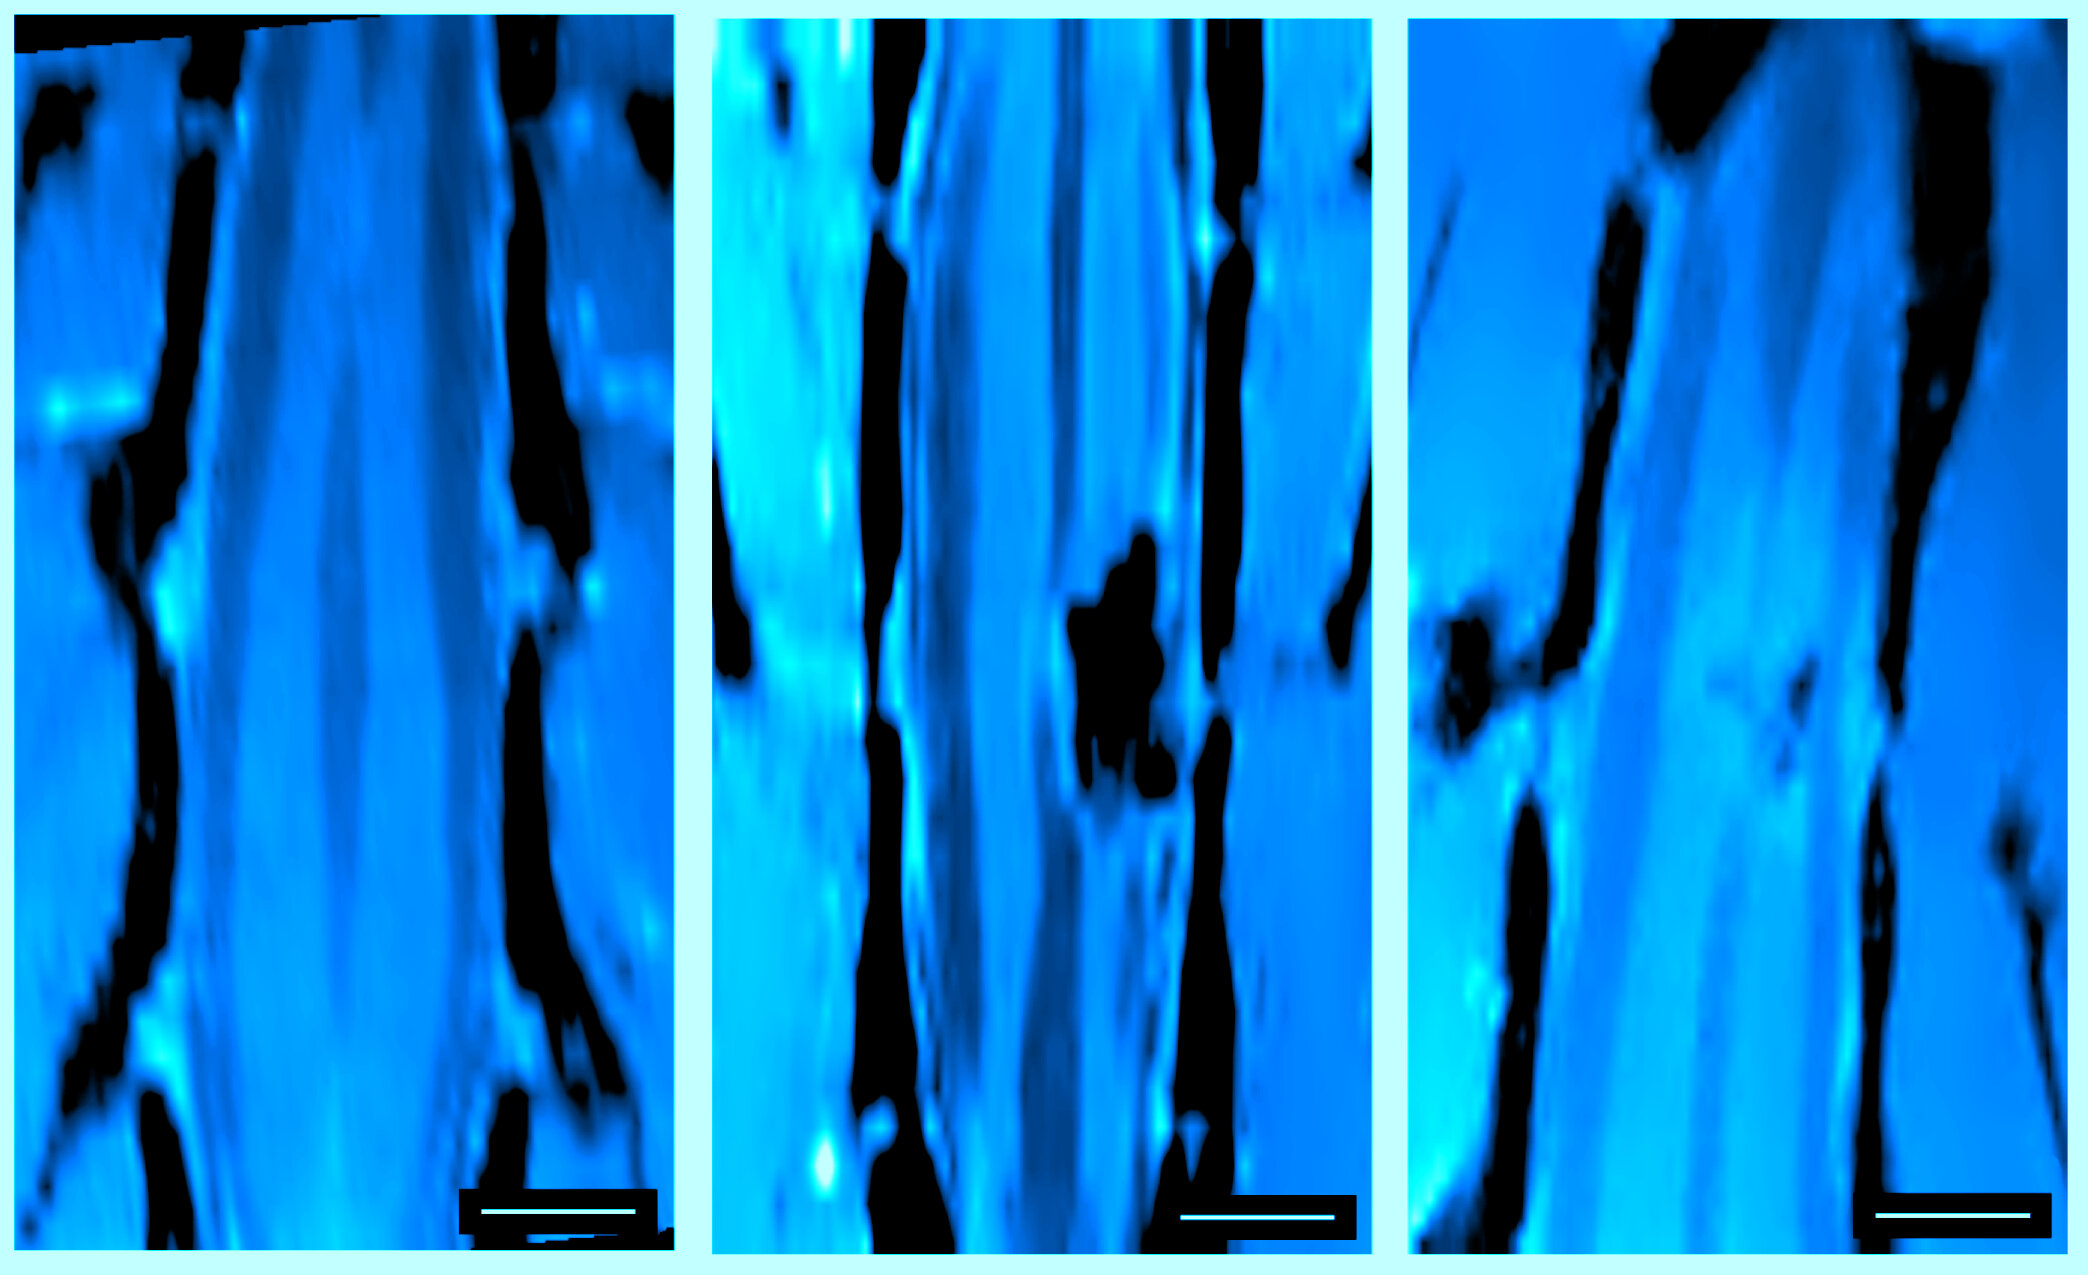 Neurons in spinal-cord injuries are reconnected in vivo via carbon nanotube sponges